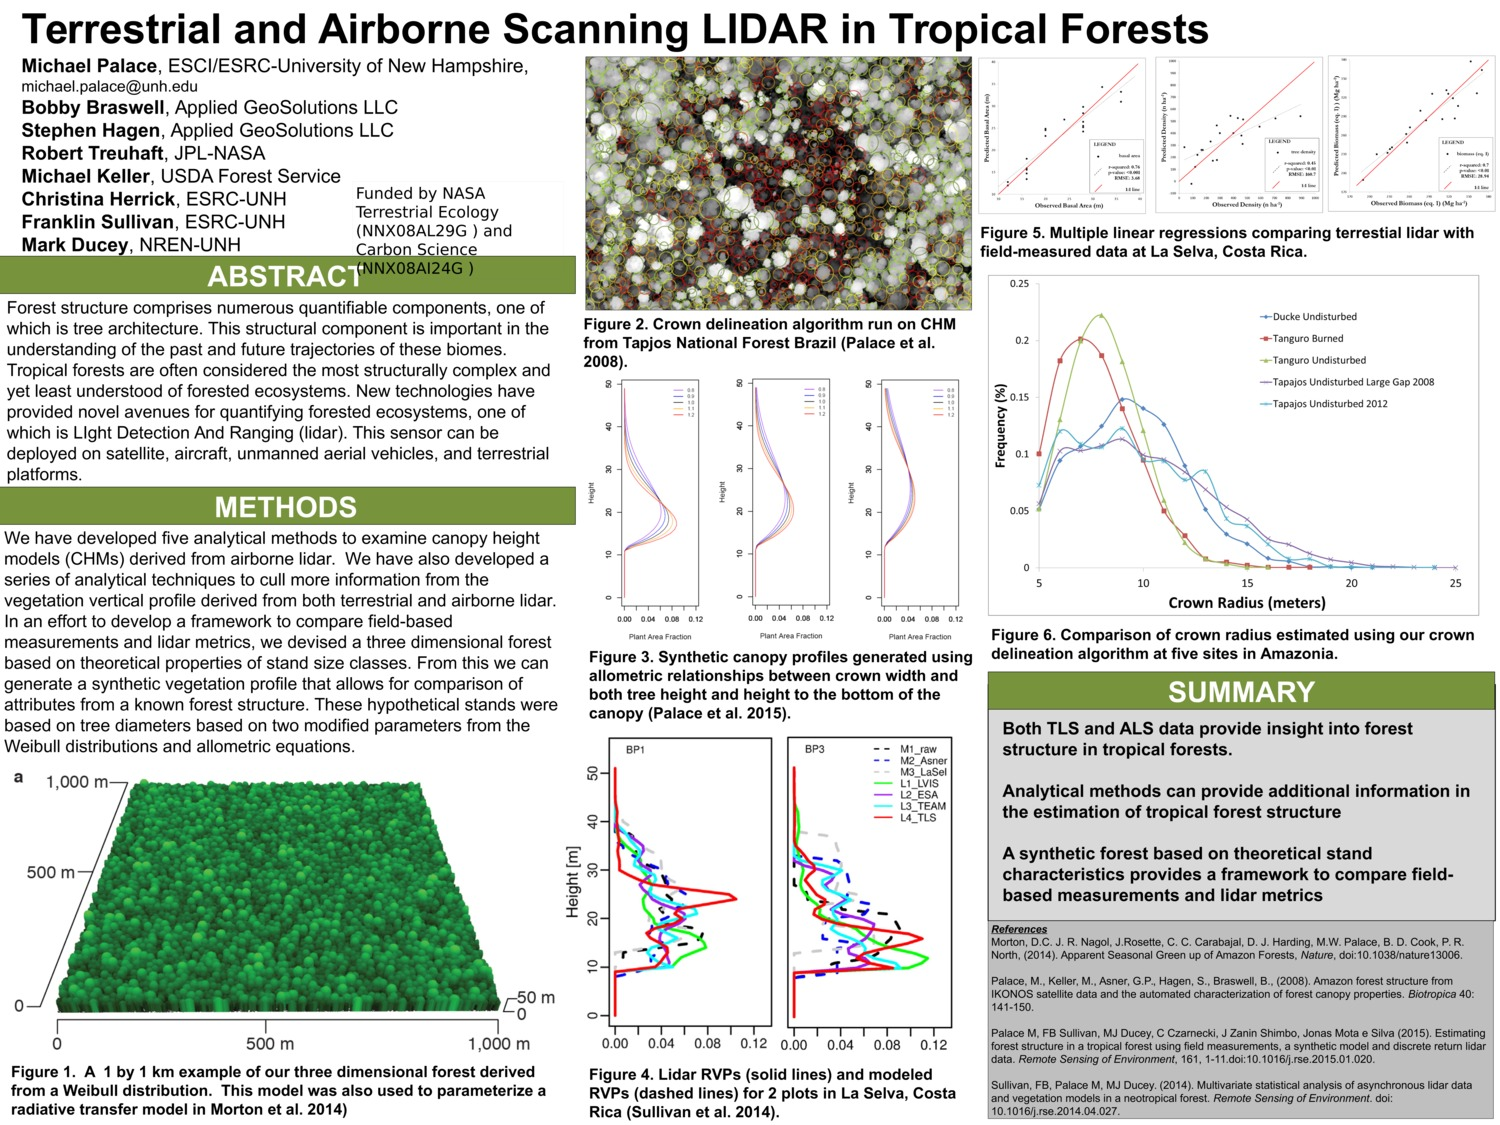 Terrestrial And Airborne Scanning Lidar In Tropical Forests by palace